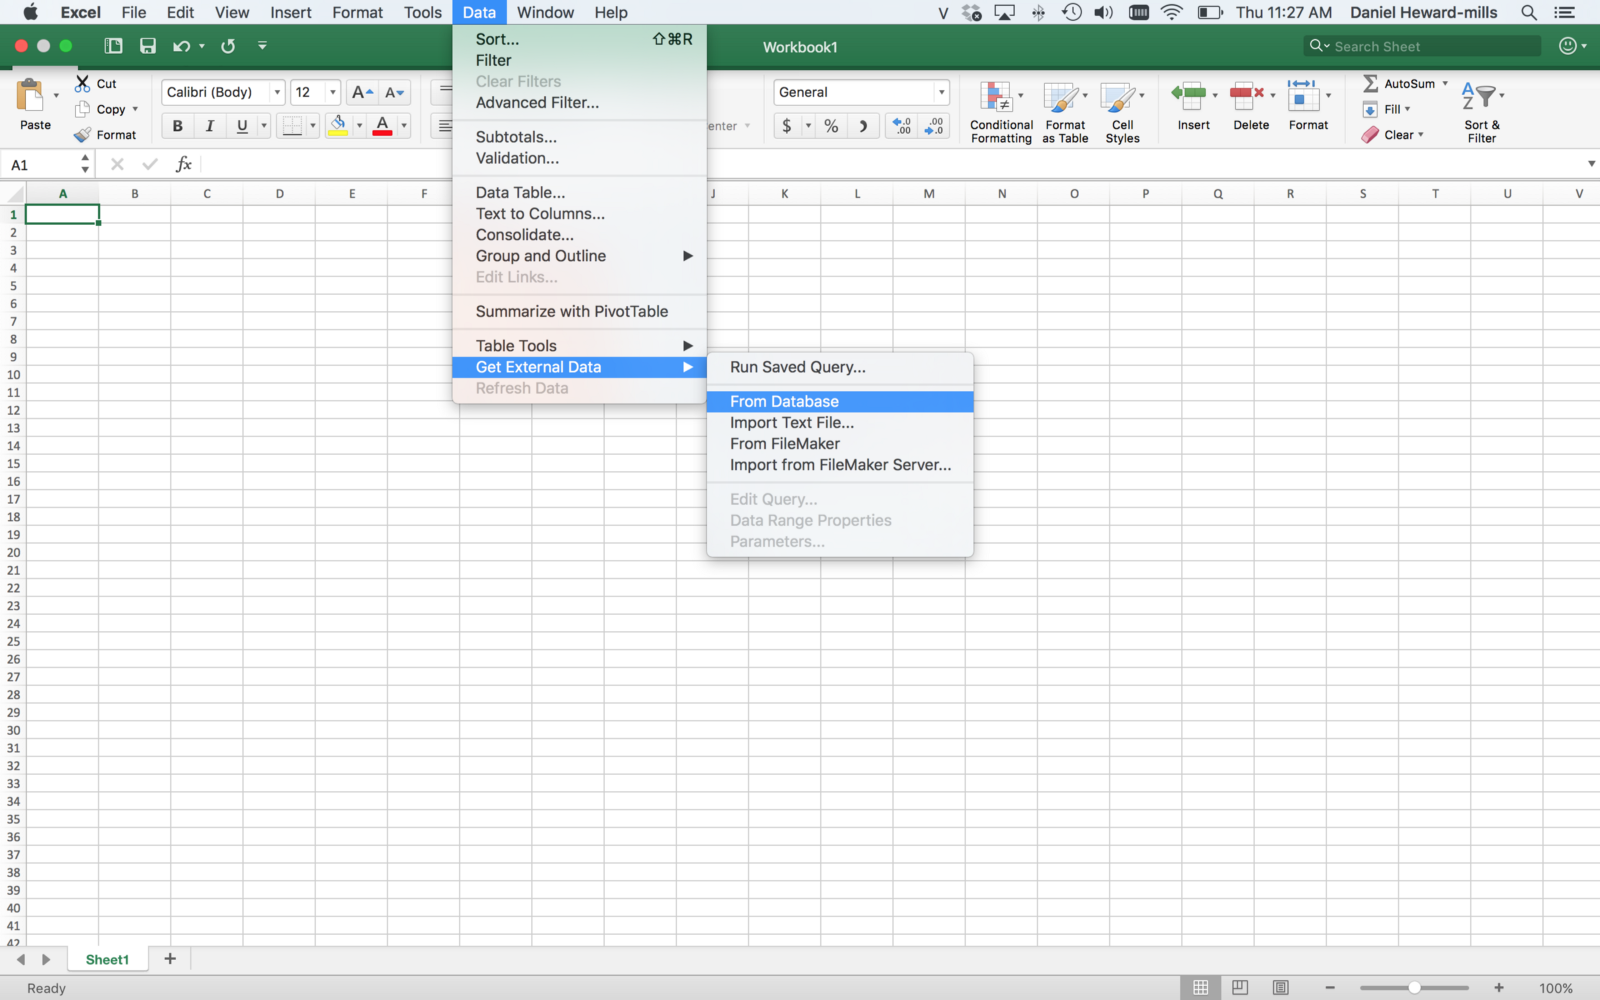 Using Microsoft Excel as a Launch Point for Semantic Web Exploration